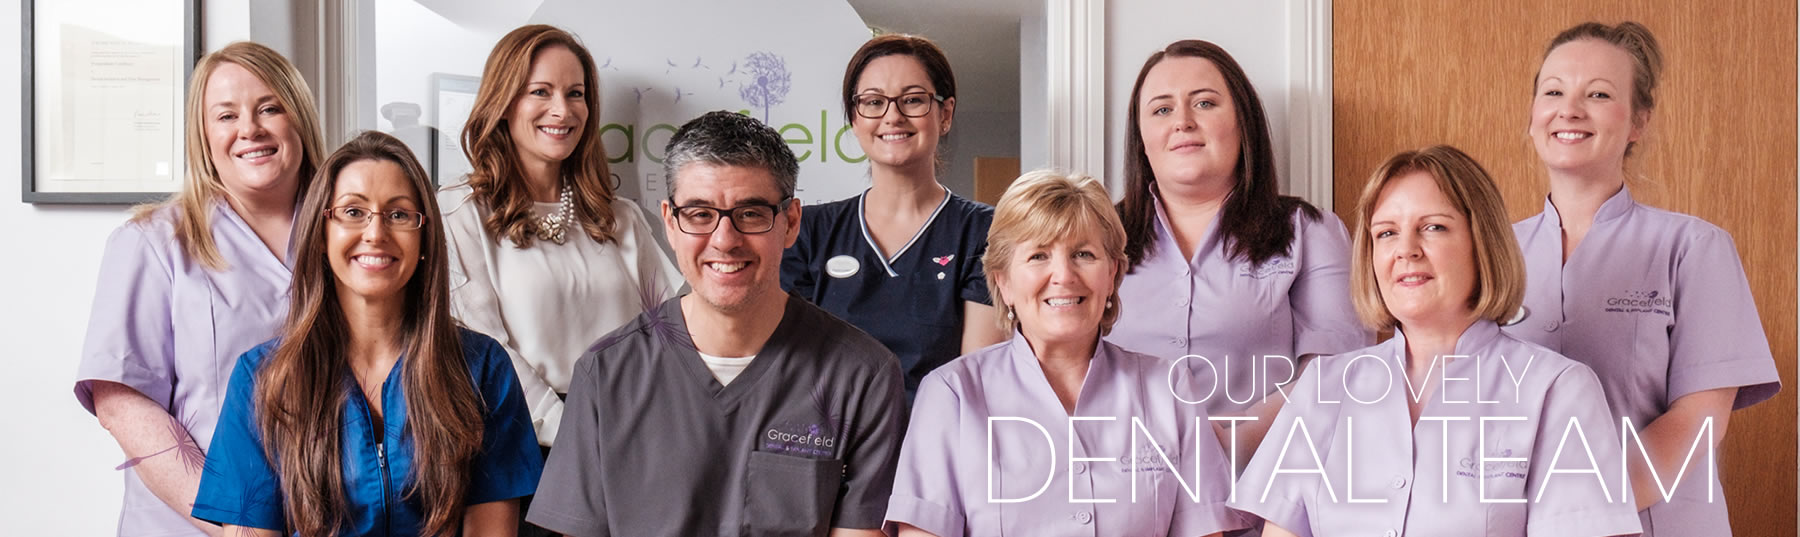 Hygiene treatments at Gracefield Dental